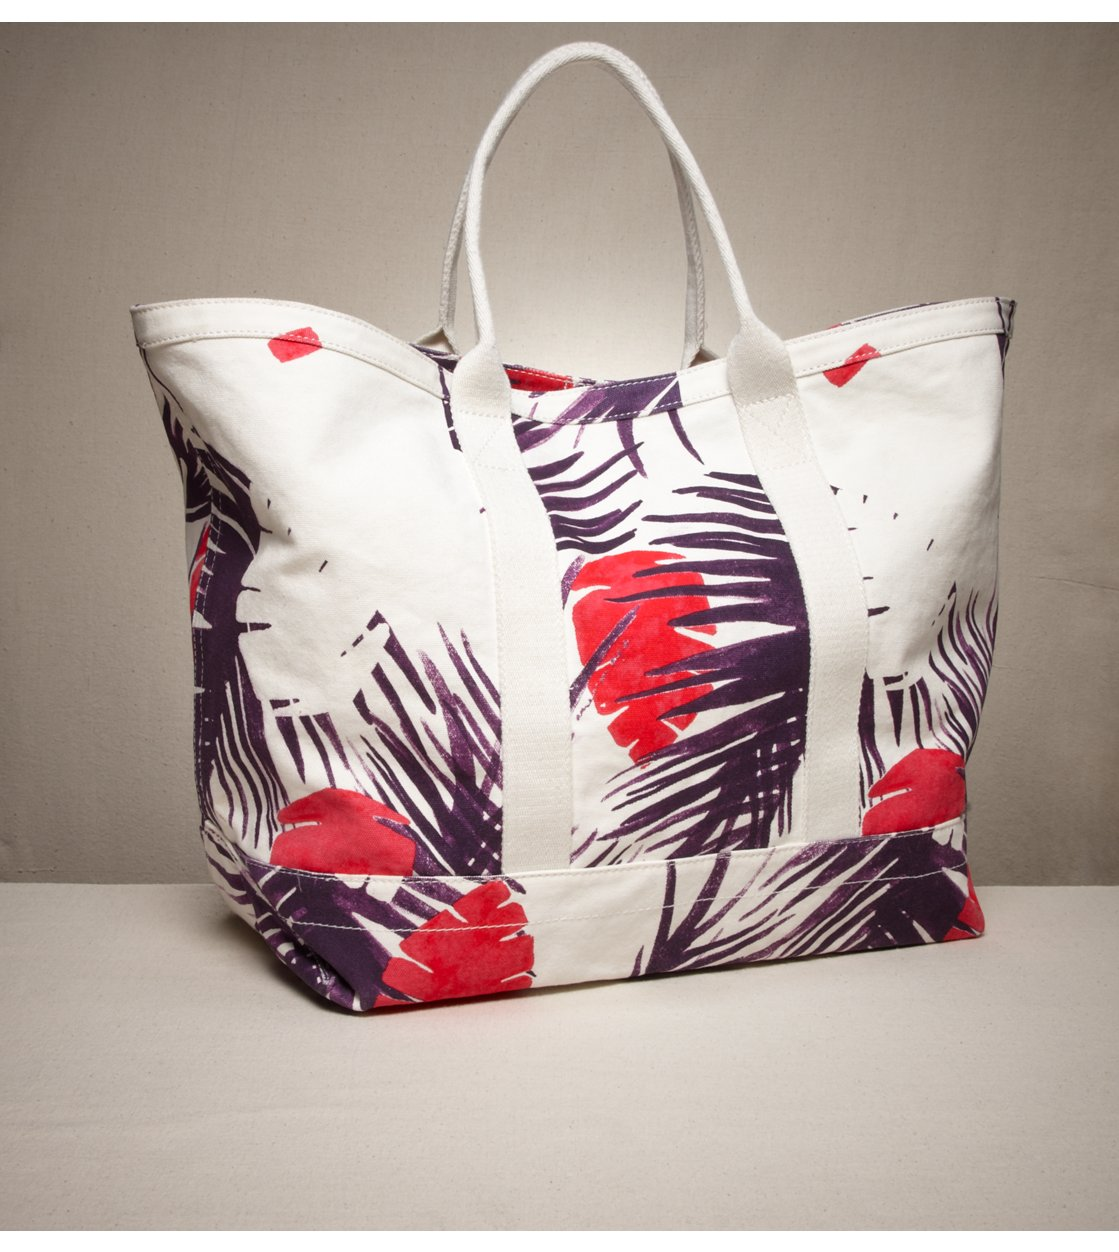 American Eagle Outfitters - Graphic Beach Tote from ae.com